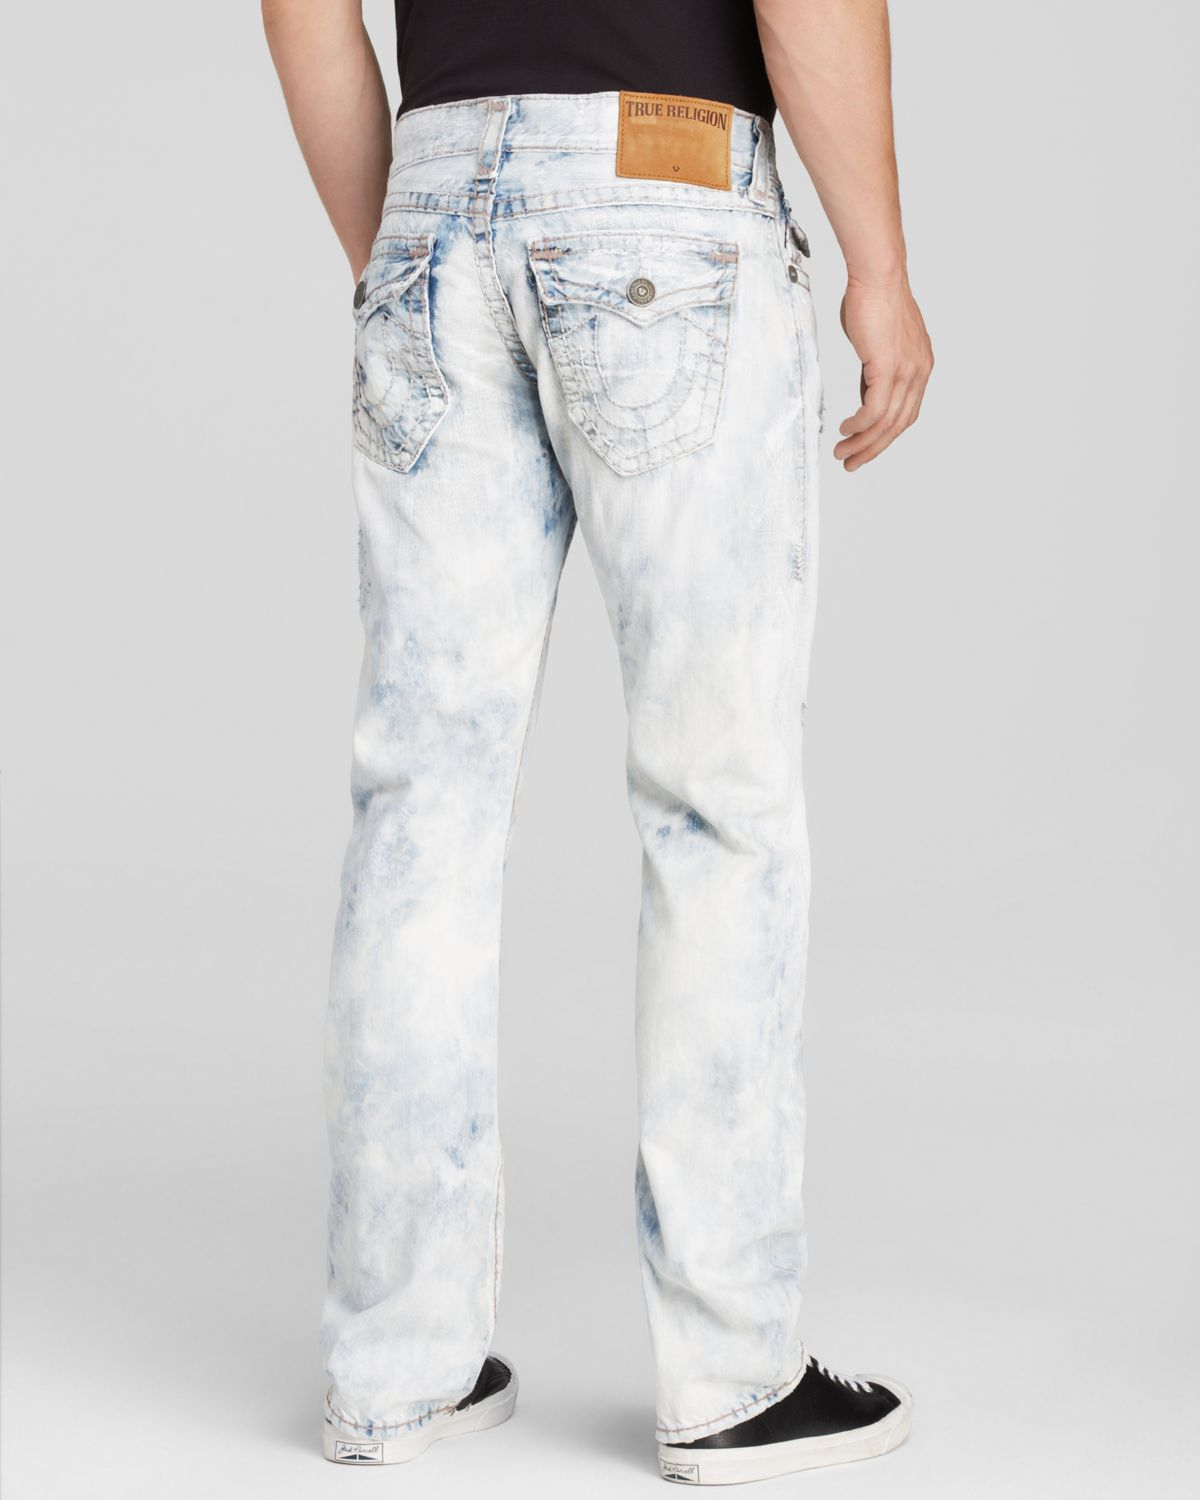 b1799ae707538 True Religion Jeans - Super T Ricky Relaxed Straight Fit In Mineral ...